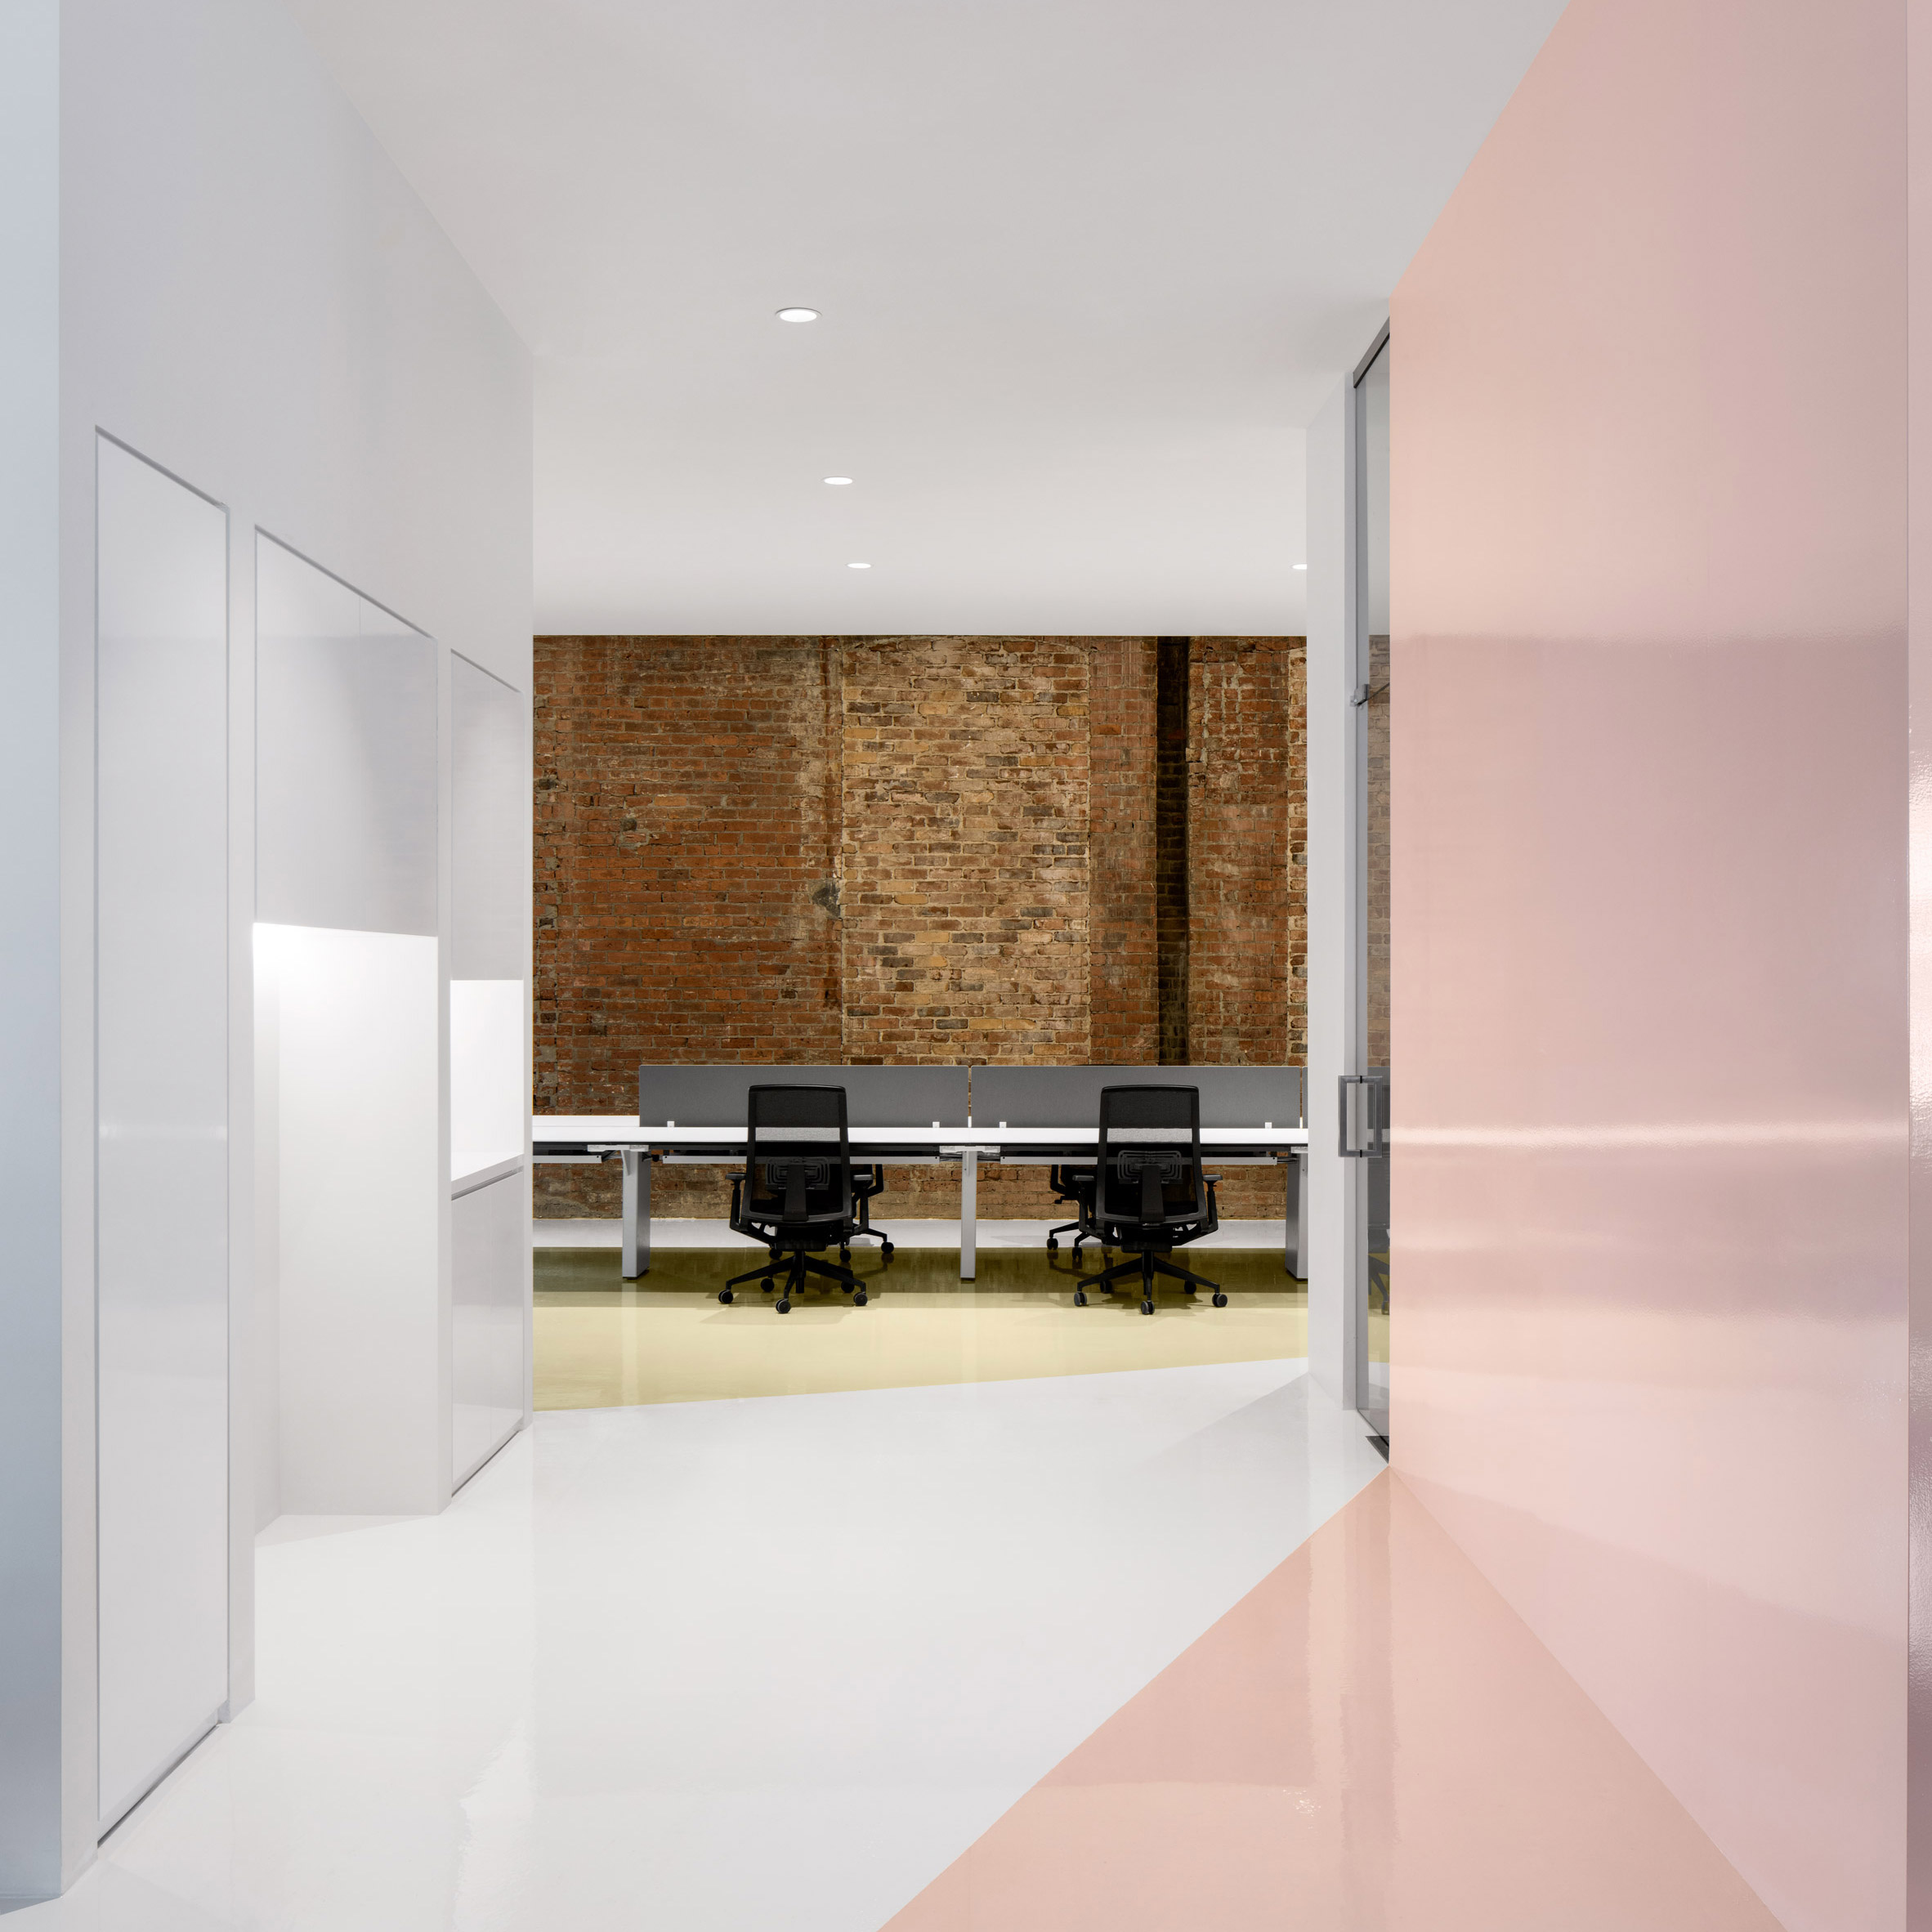 Interior Design Office Montreal: ACDF Architecture Combines Pastels And Exposed Brick At